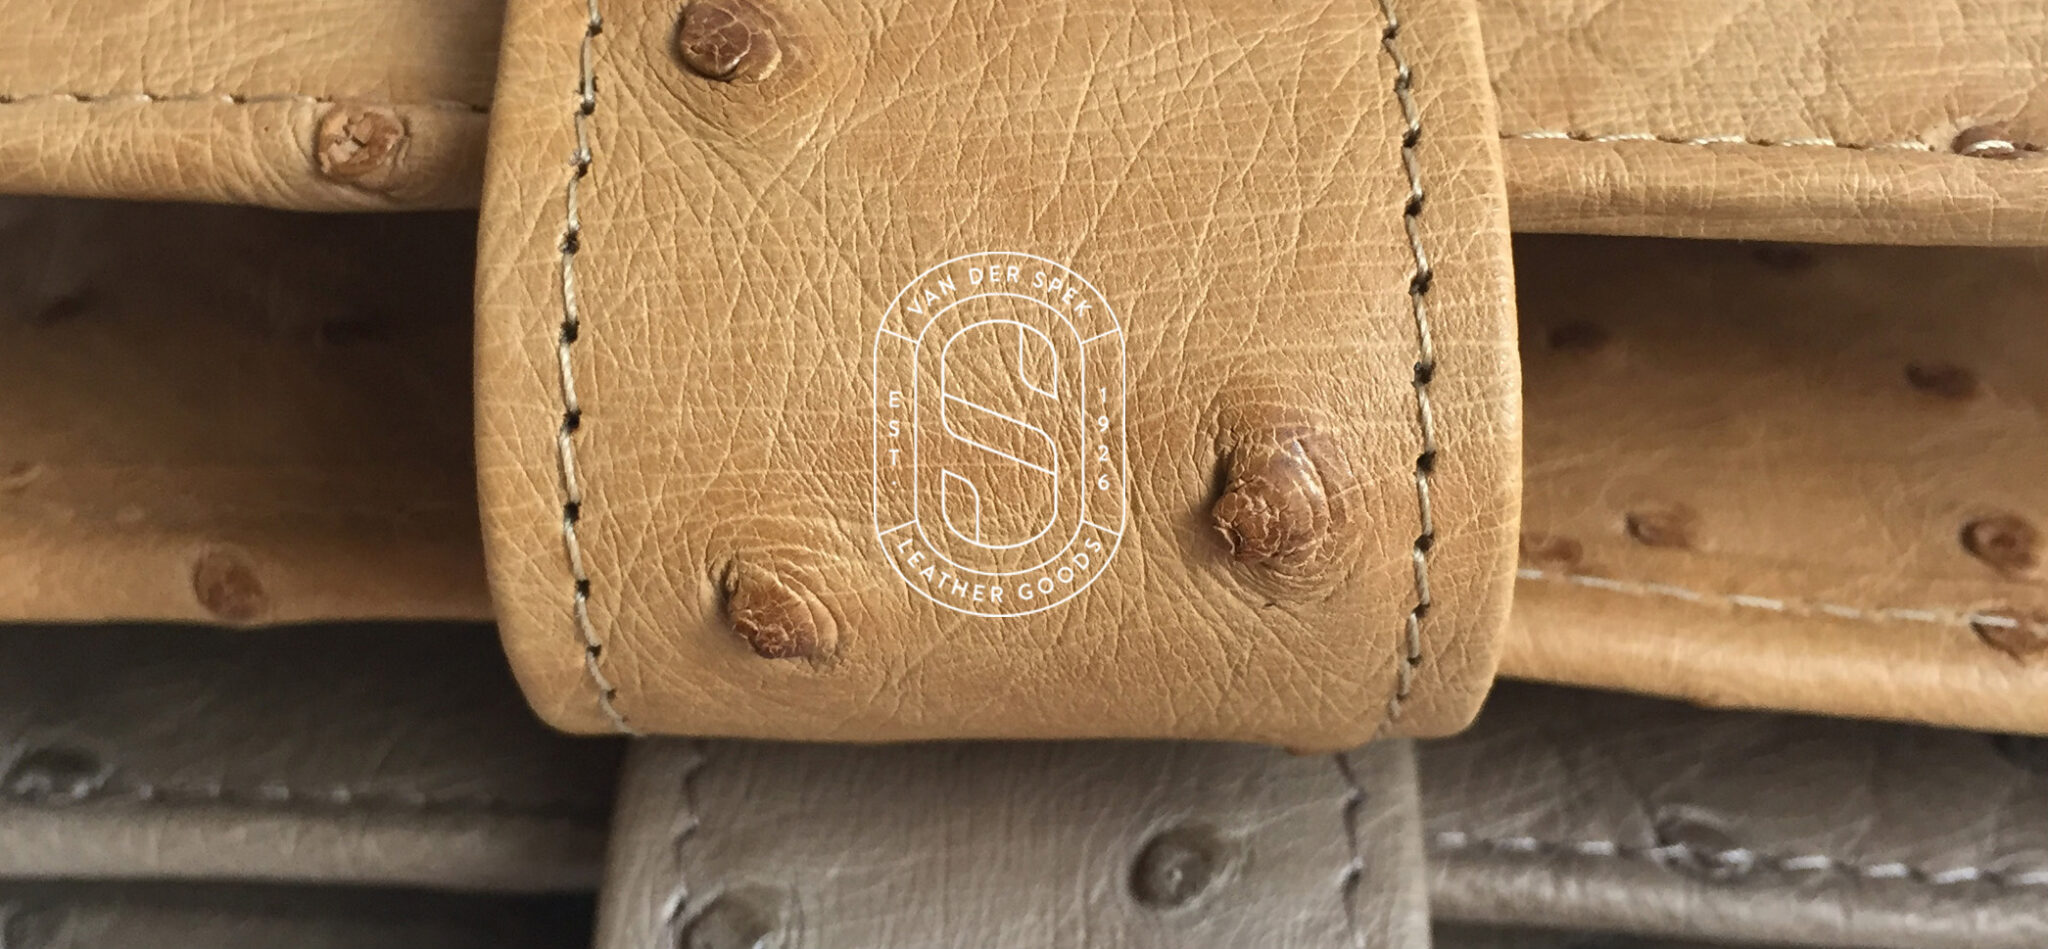 Van der Spek Leather Goods Puttershoek